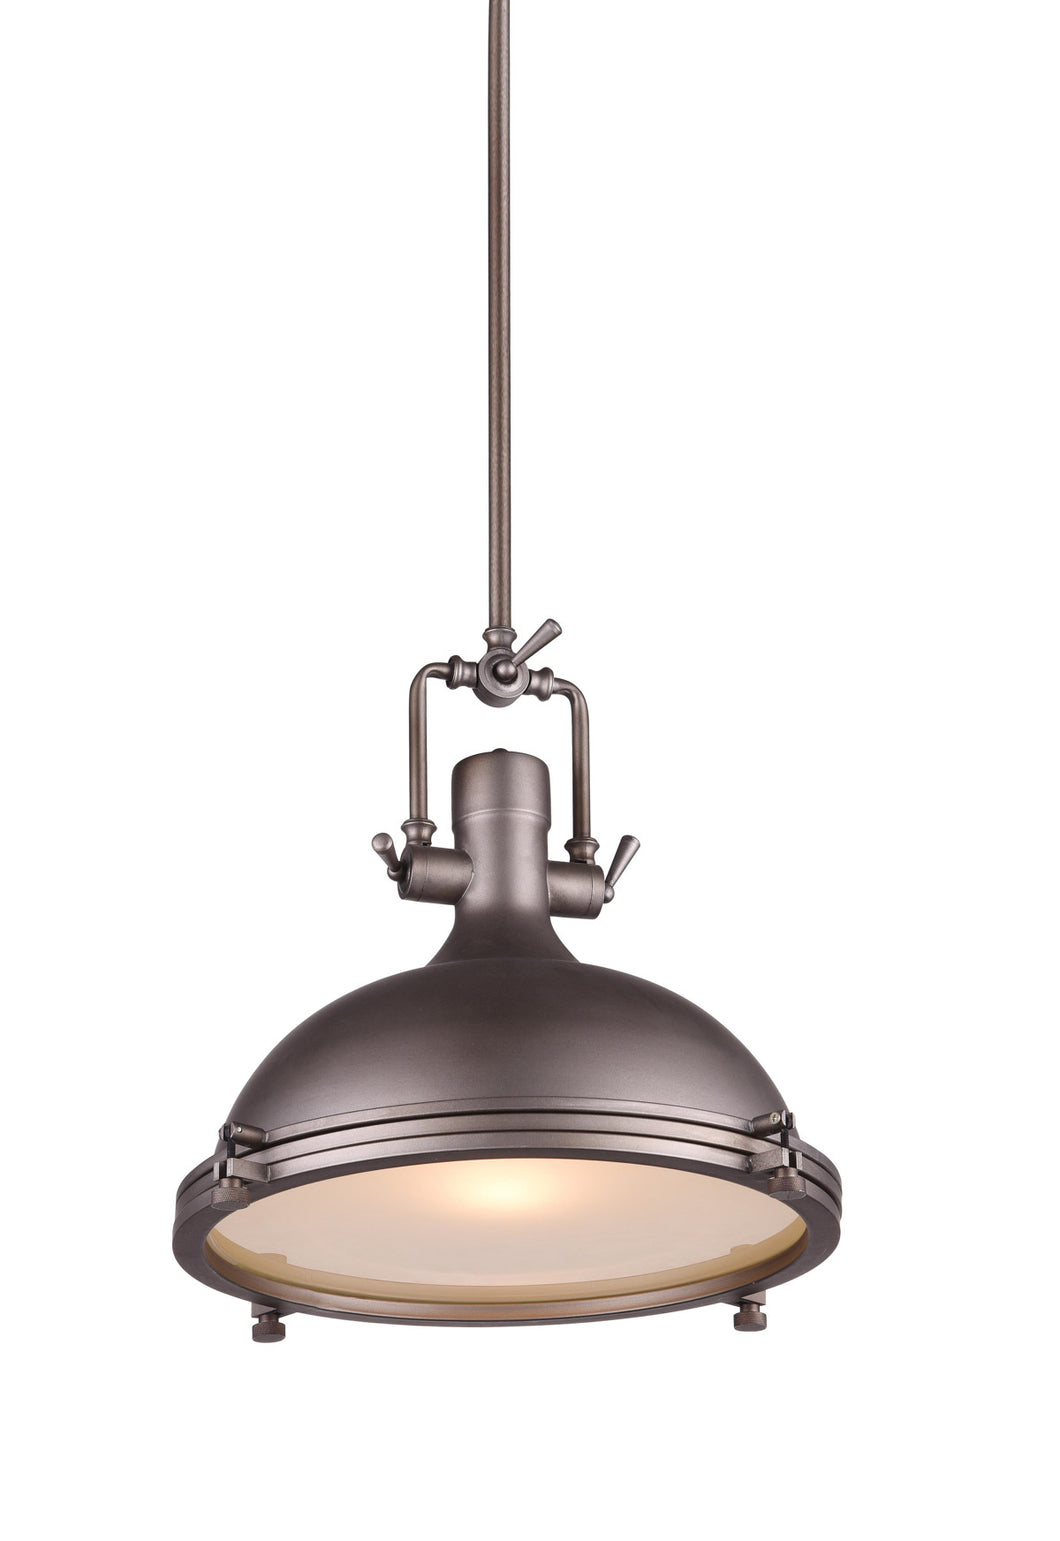 1 Light Down Pendant with Gray finish